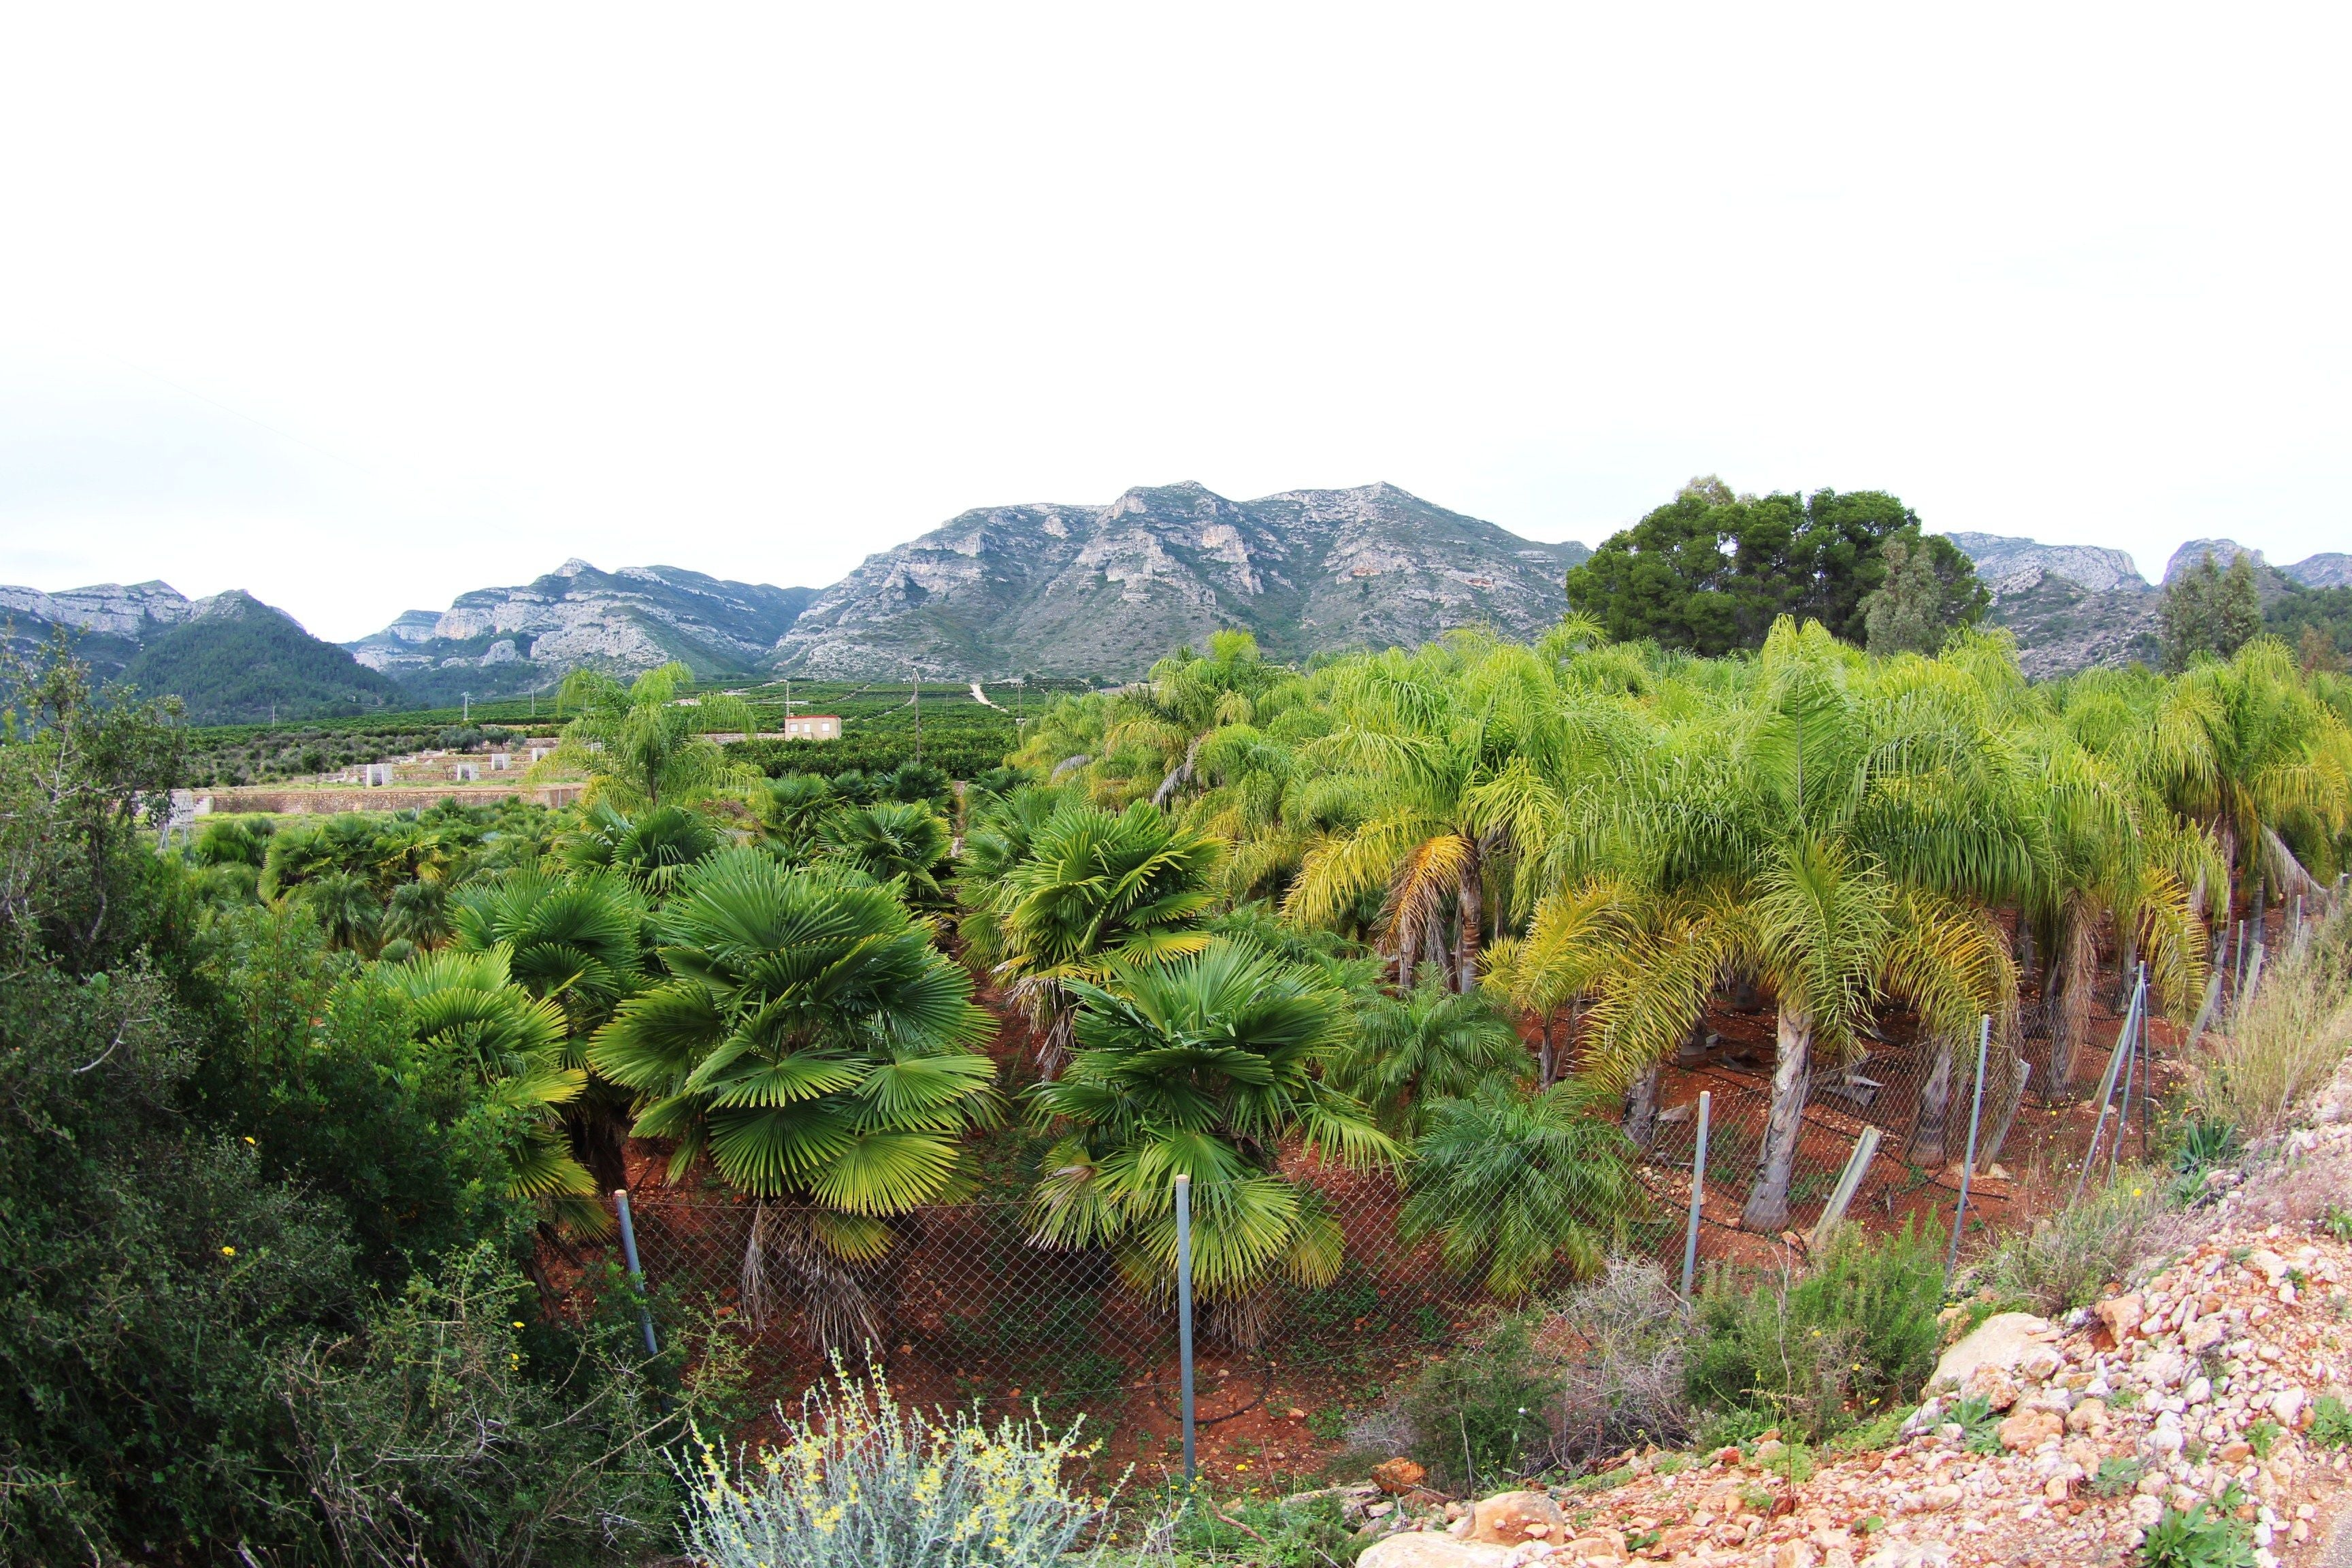 Vegetation in Ruta La Font de Lloret